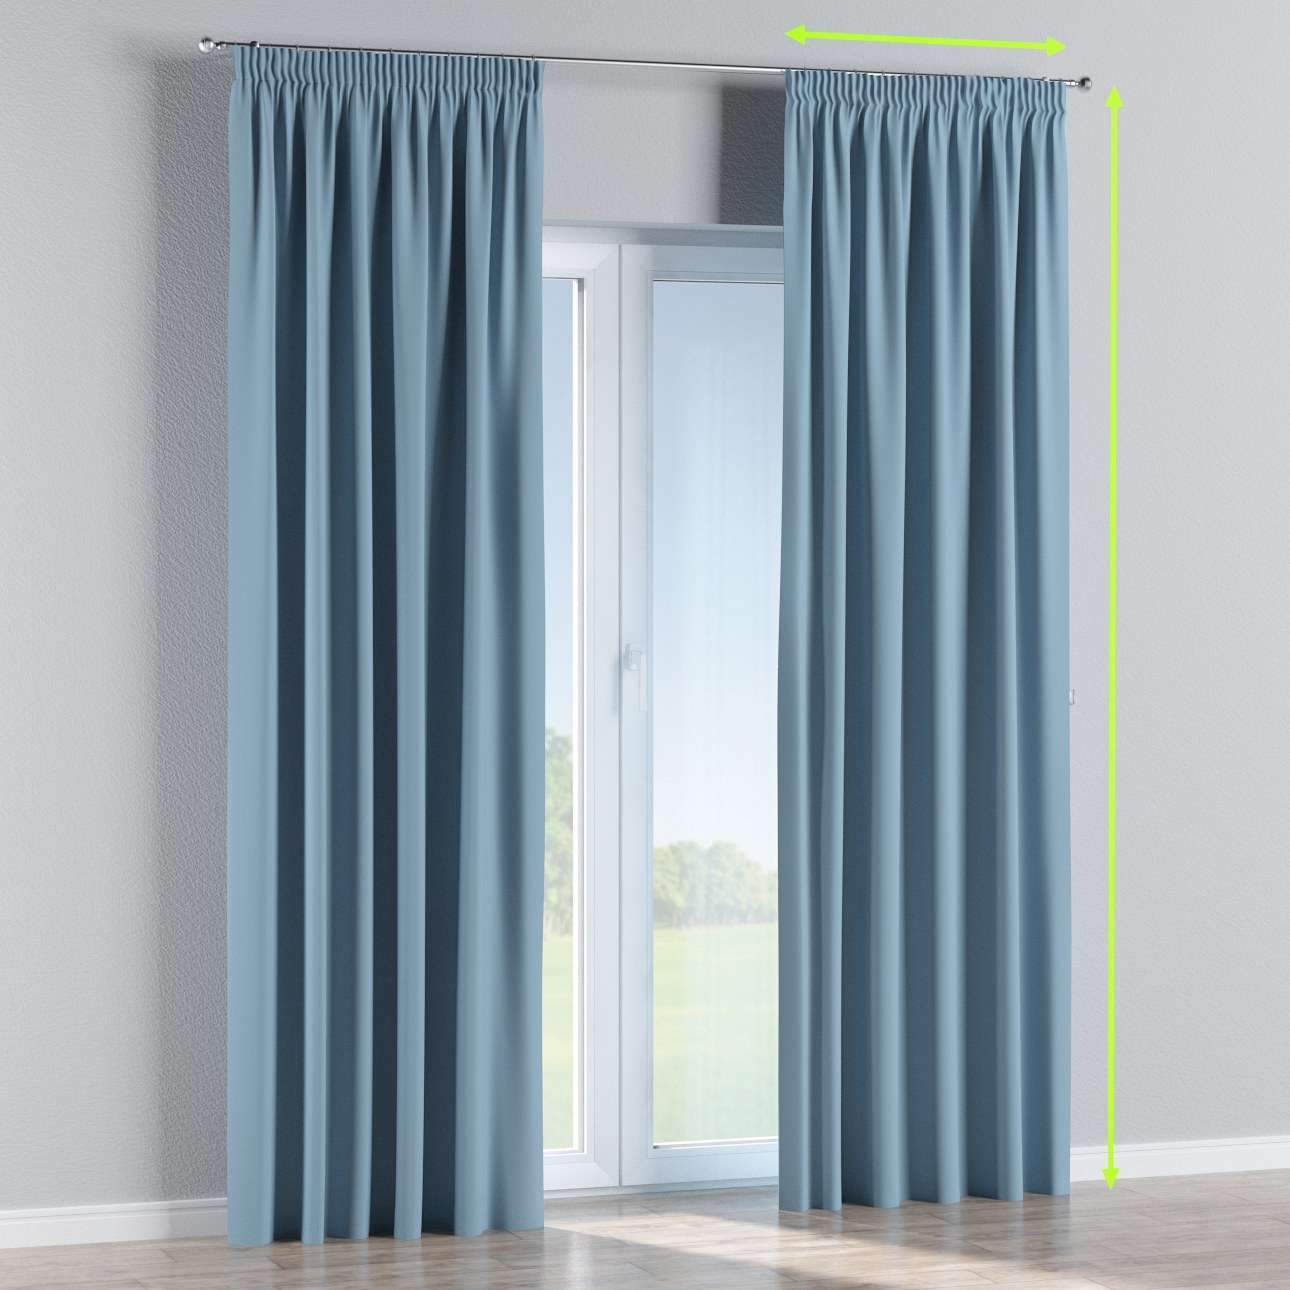 Pencil pleat curtain in collection Blackout, fabric: 269-08